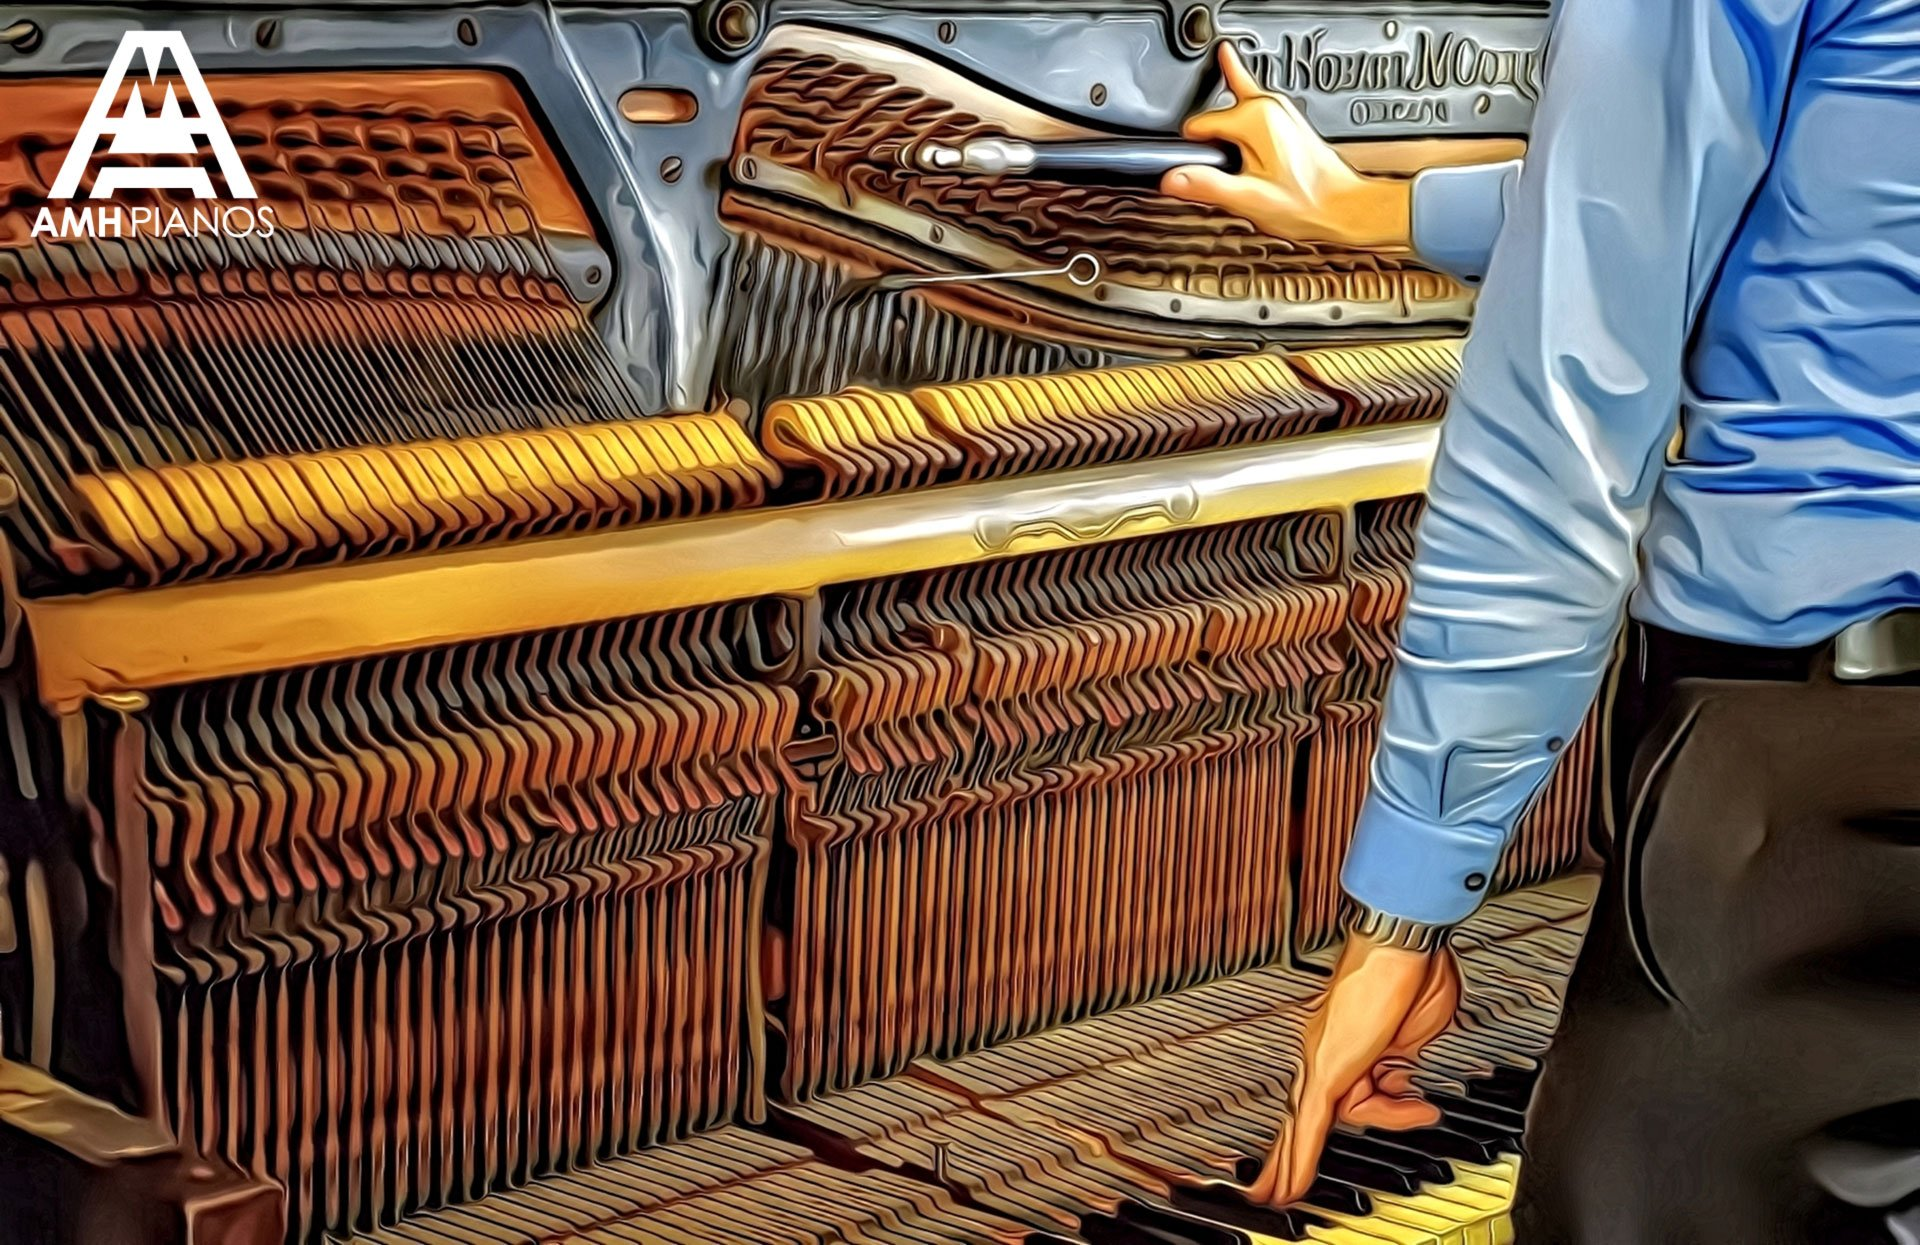 Man Tuning A Large Upright Piano